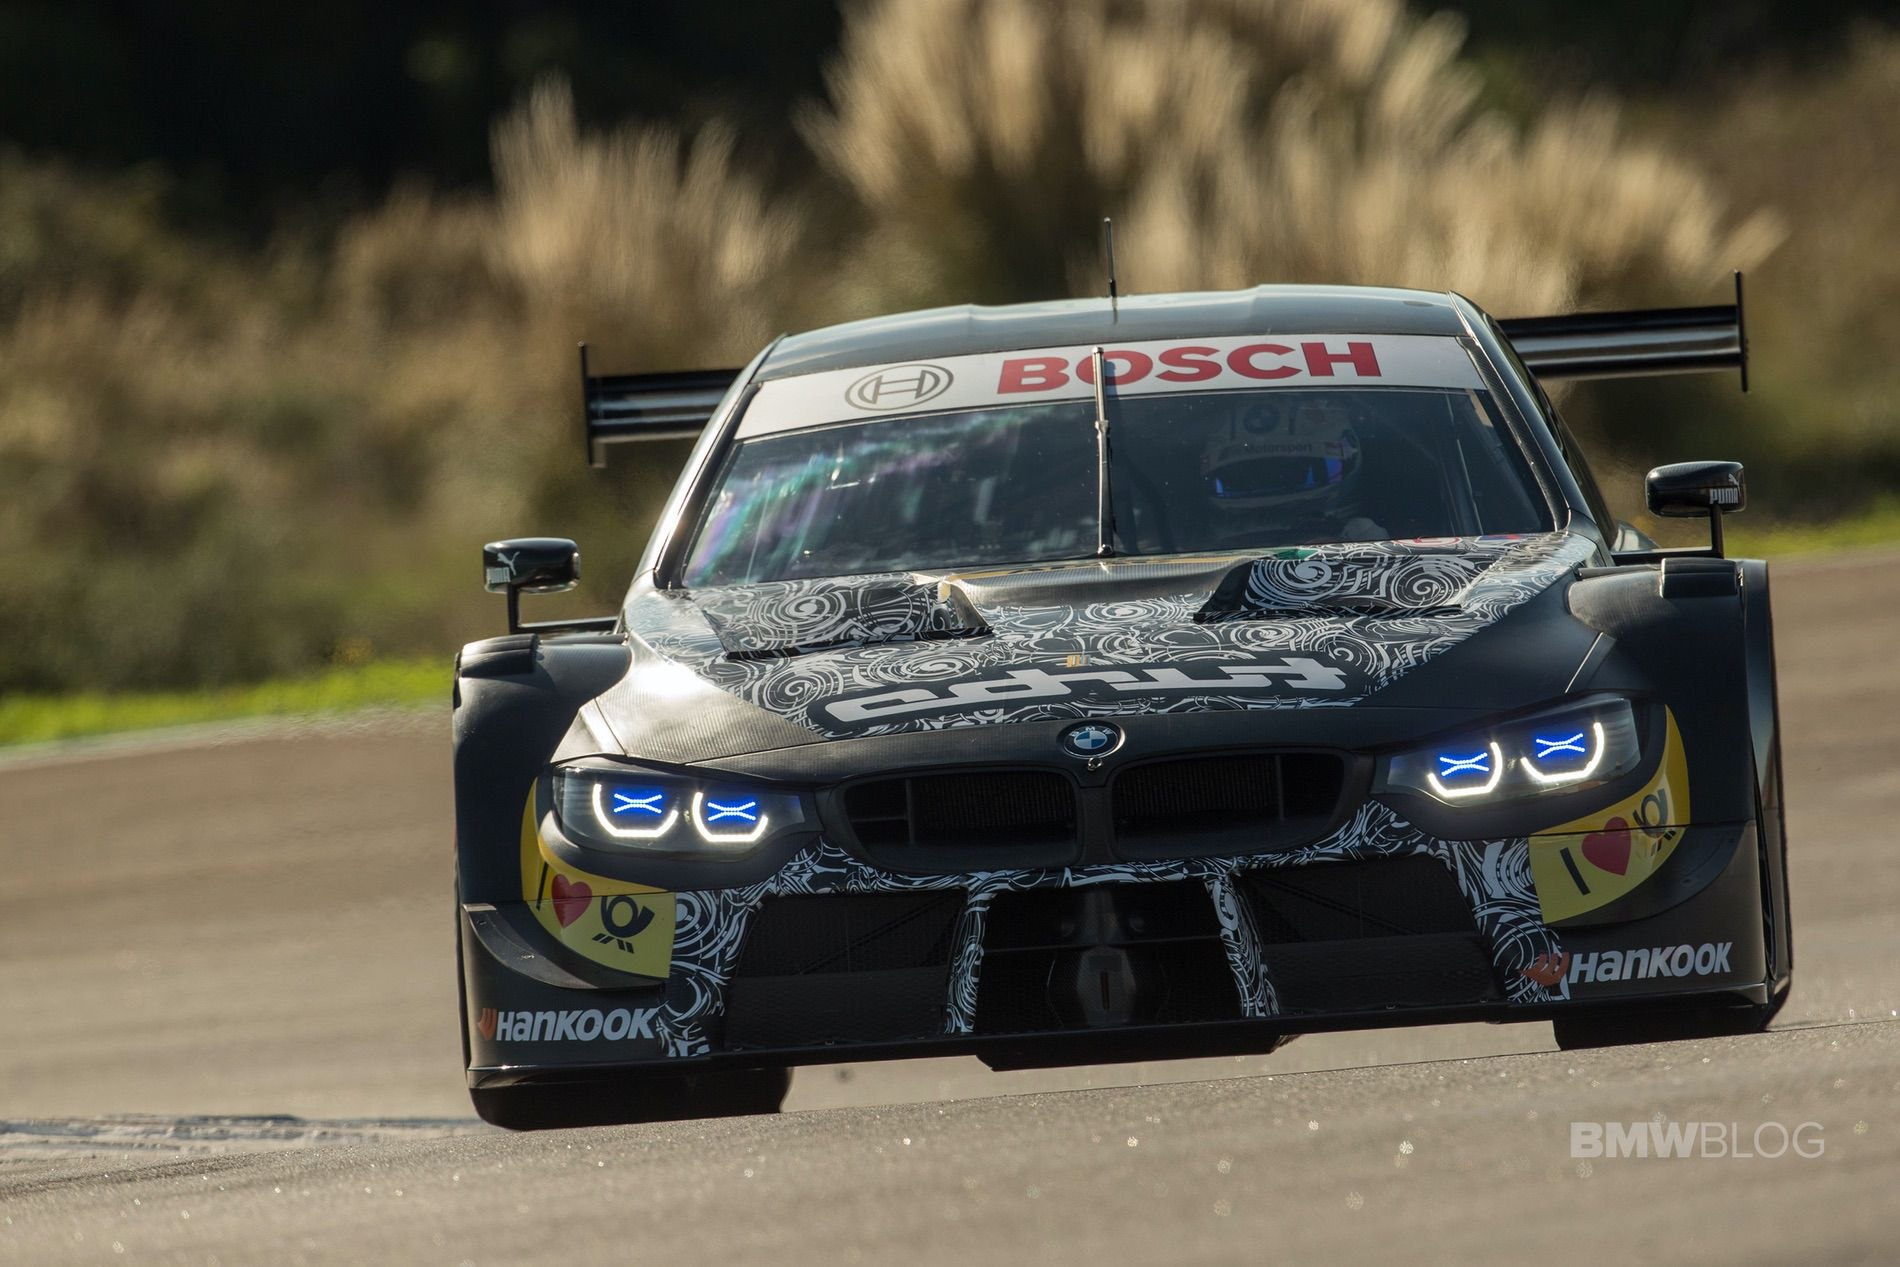 Bmw M Motorsport Completes First Test With The New 2019 Season Bmw